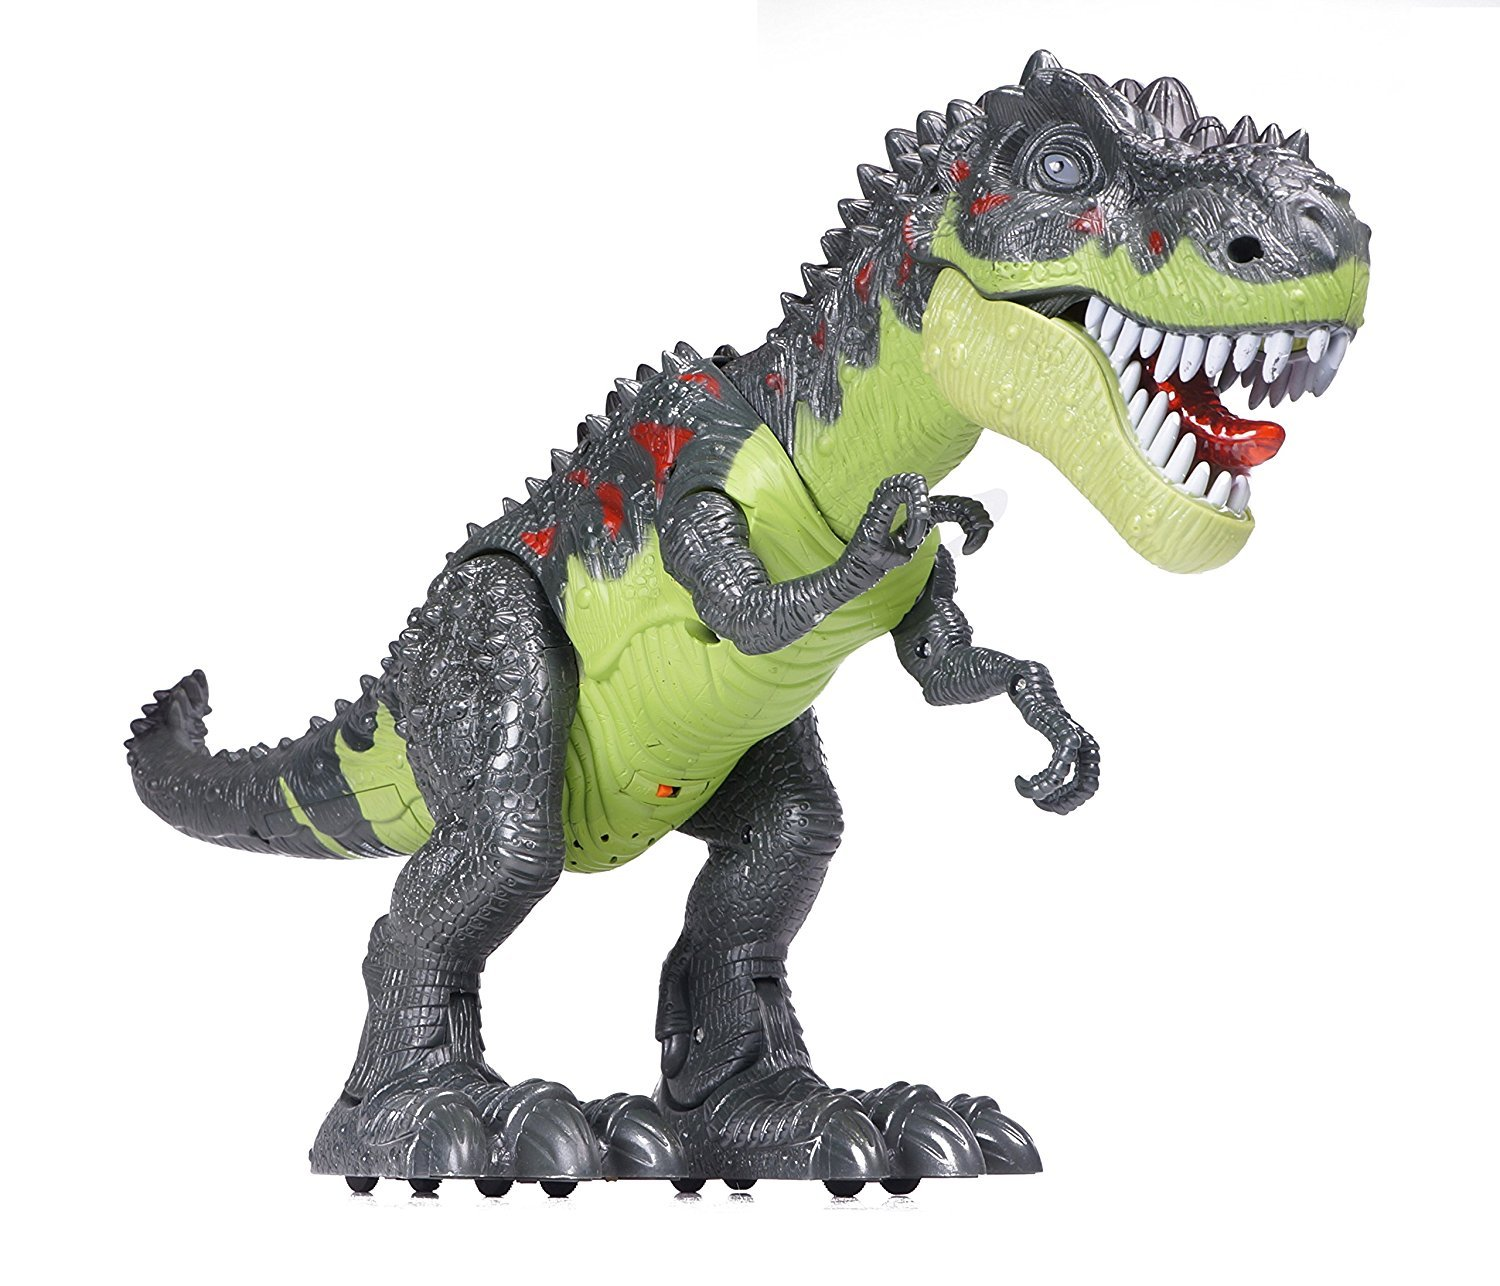 CifToys Tyrannosaurus Rex Dinosaur Walking Dinosaur Toys Kids Toy Realistic Jurassic Trex Dinosaur Action Toy Figure Walking Moving Glowing Dino Figure (Green) by CifToys (Image #2)